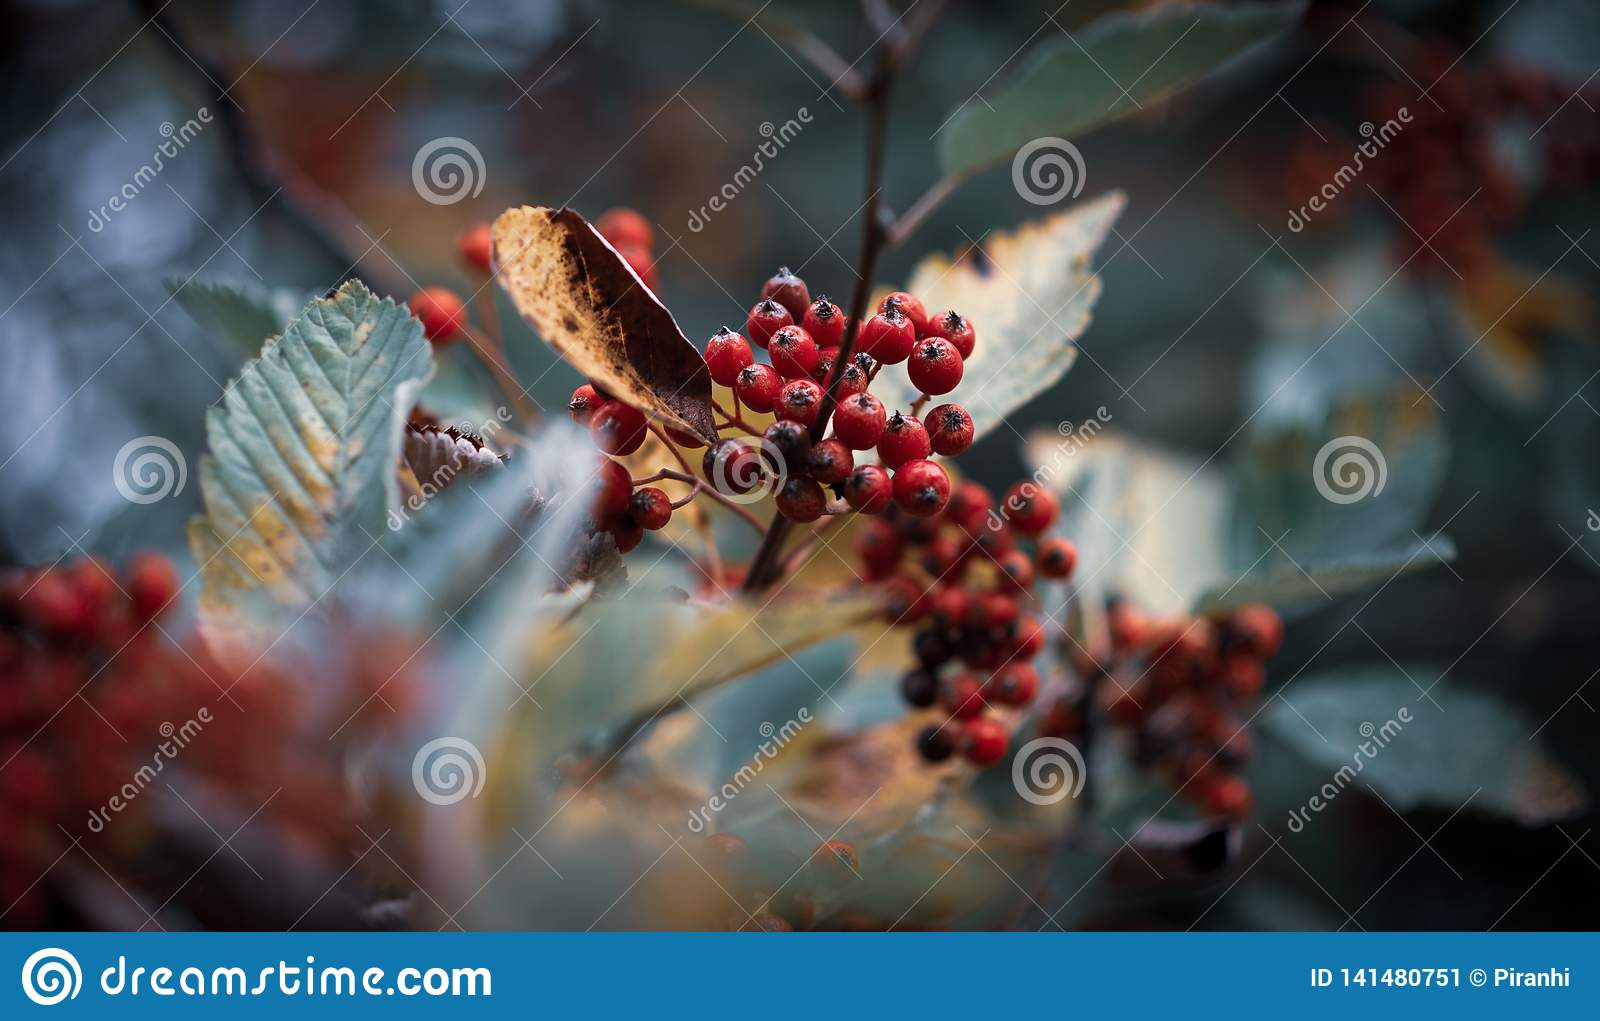 Red berries on a cold background surrounded by leaves in Winter